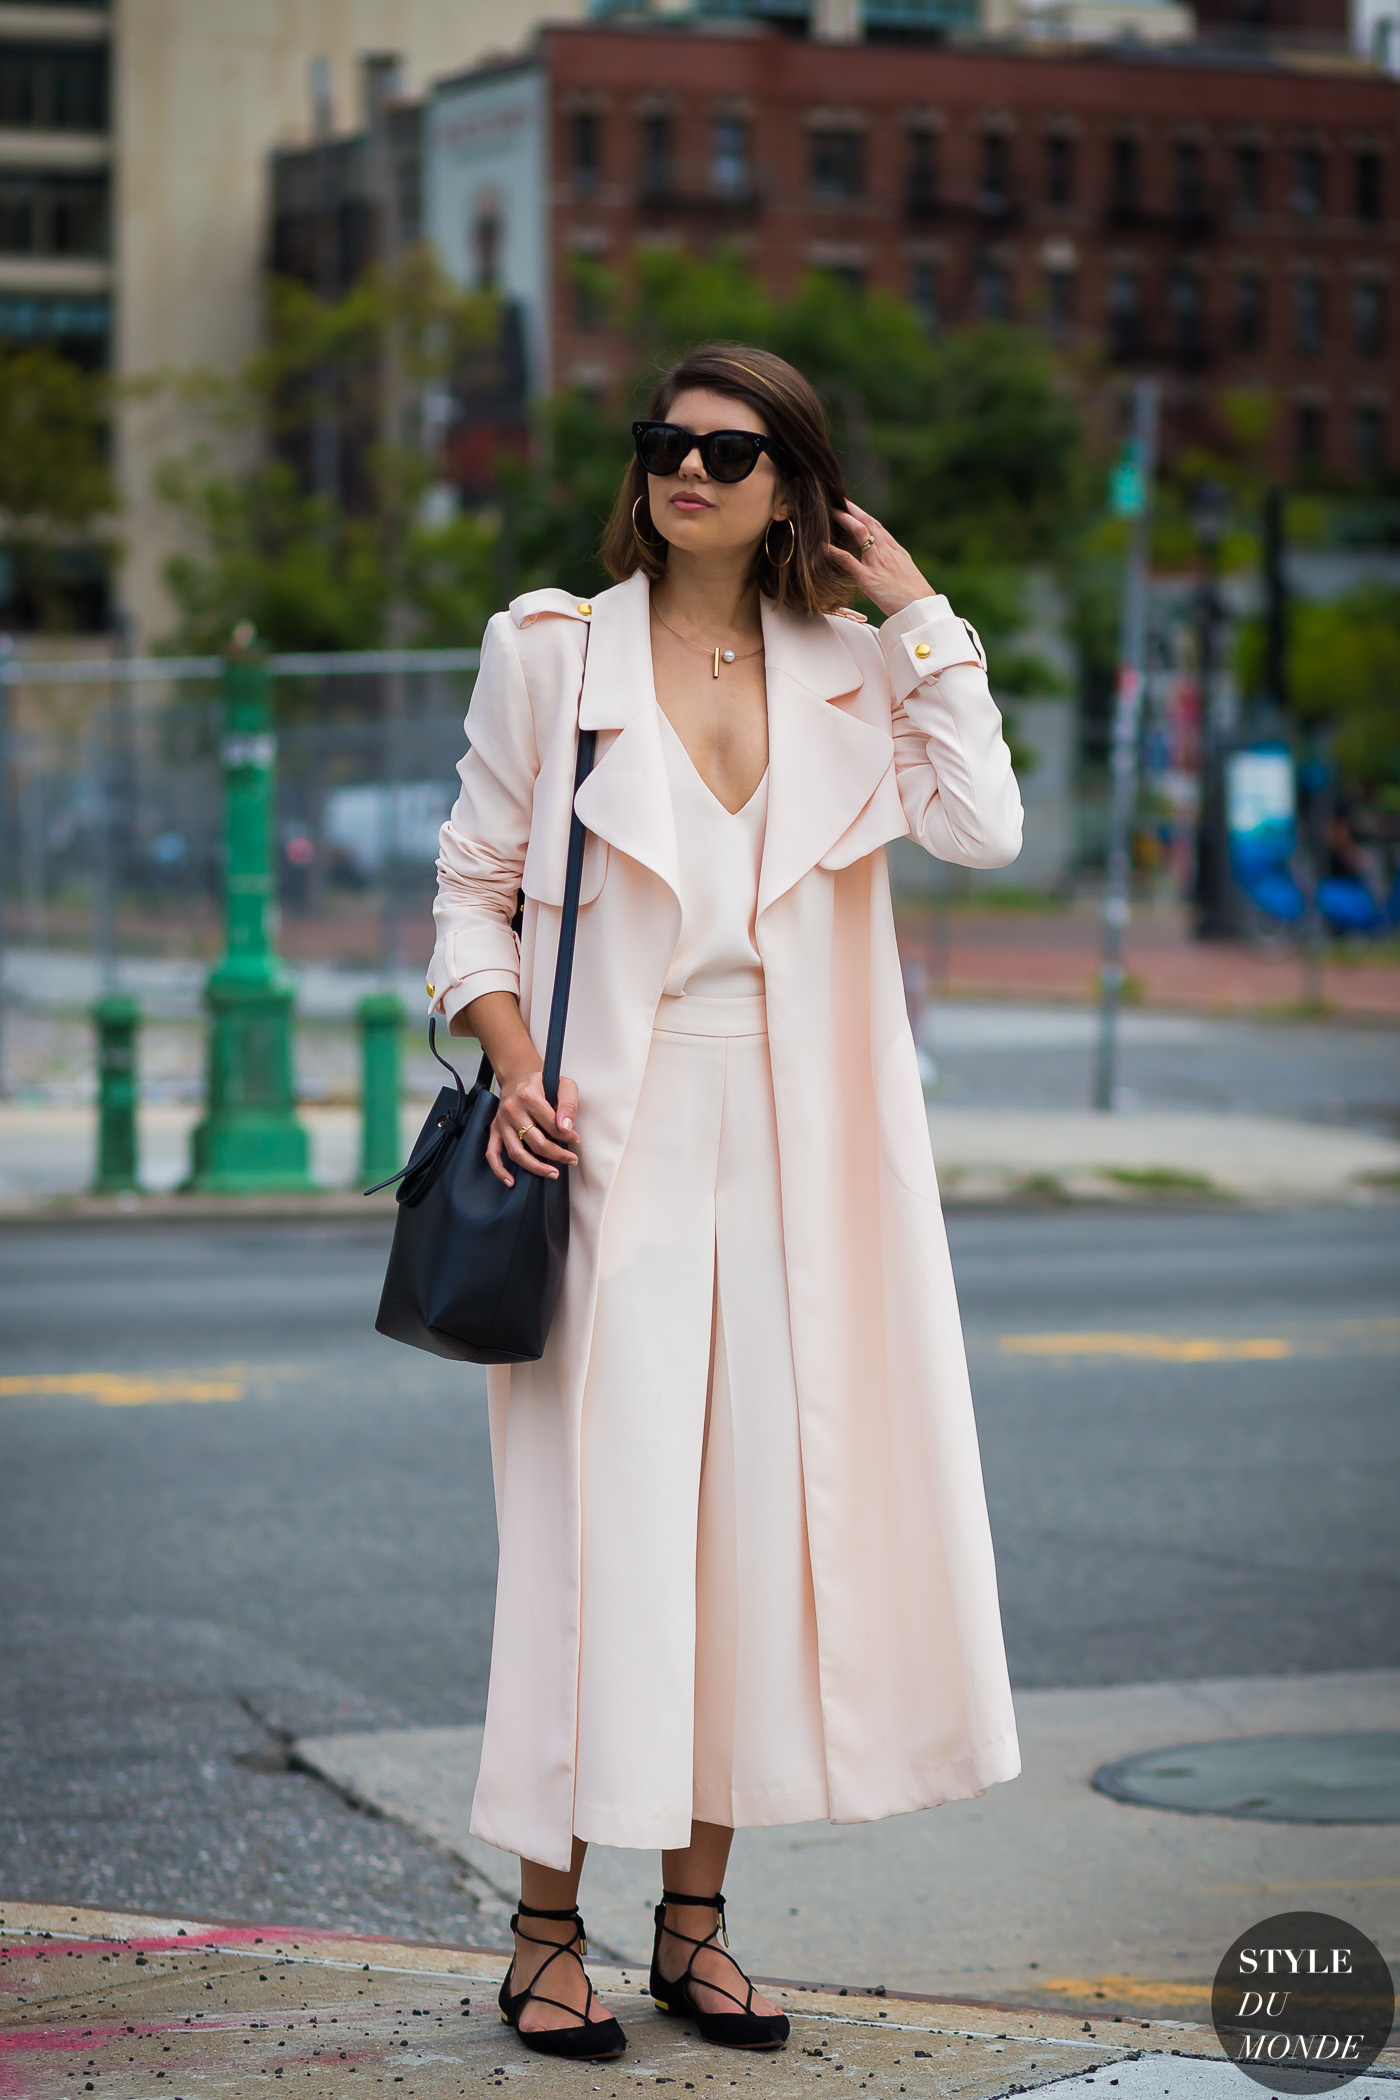 Style Inspiration On Pinterest Angelica Blick Australian Fashion And Today 39 S Outfit